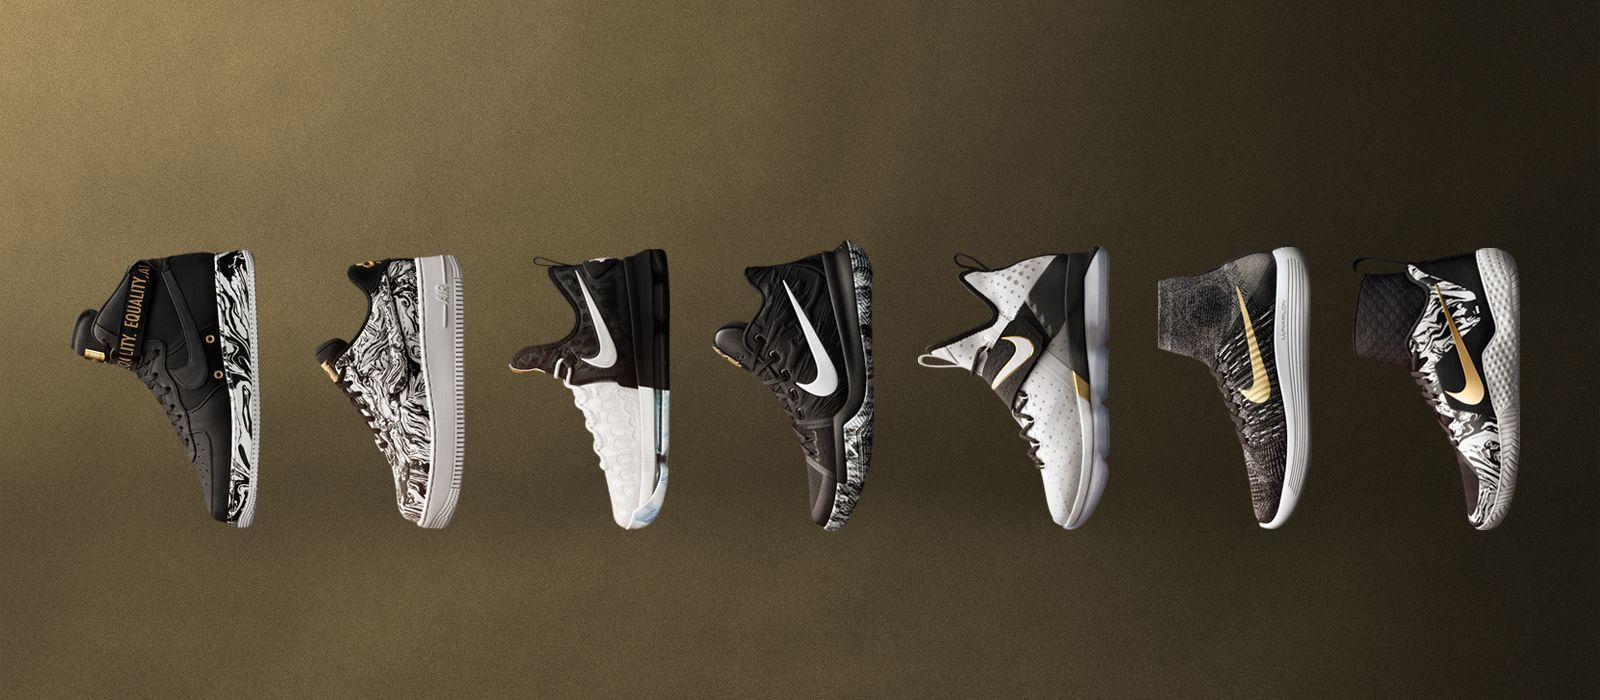 BLACK HISTORY MONTH COLLECTION Featuring sneakers from Nike Basketball, Nike  Sportswear, Nike Running and